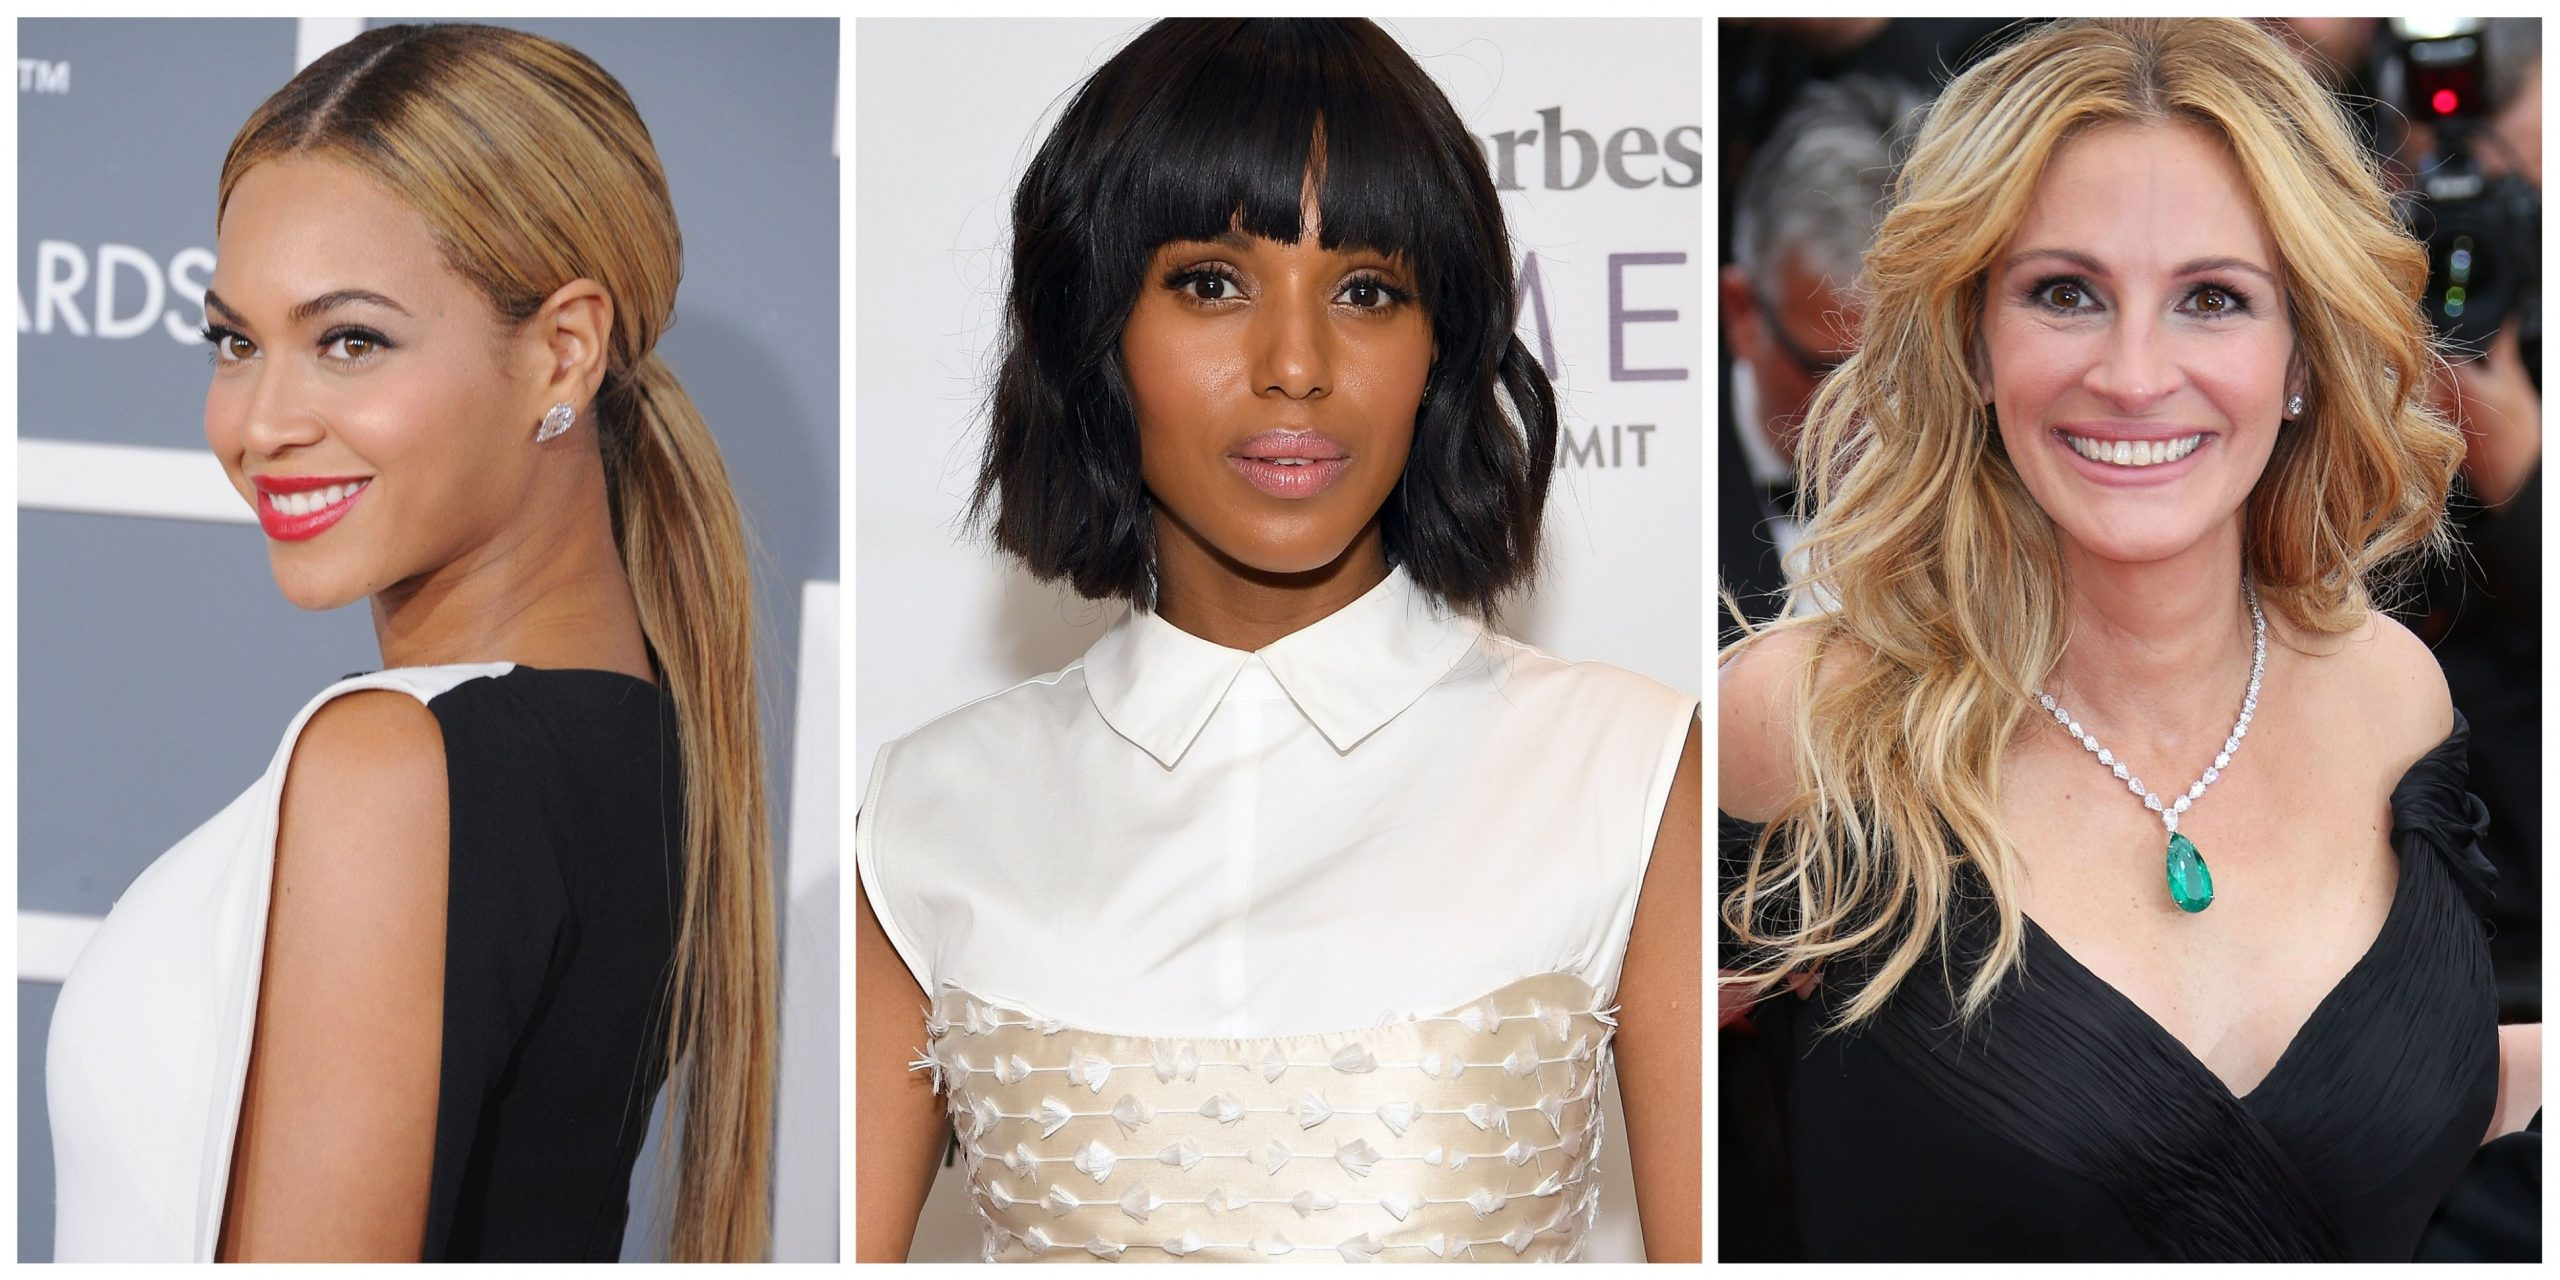 12 Best Hairstyles for Long Faces - Haircuts for Long Face Shapes